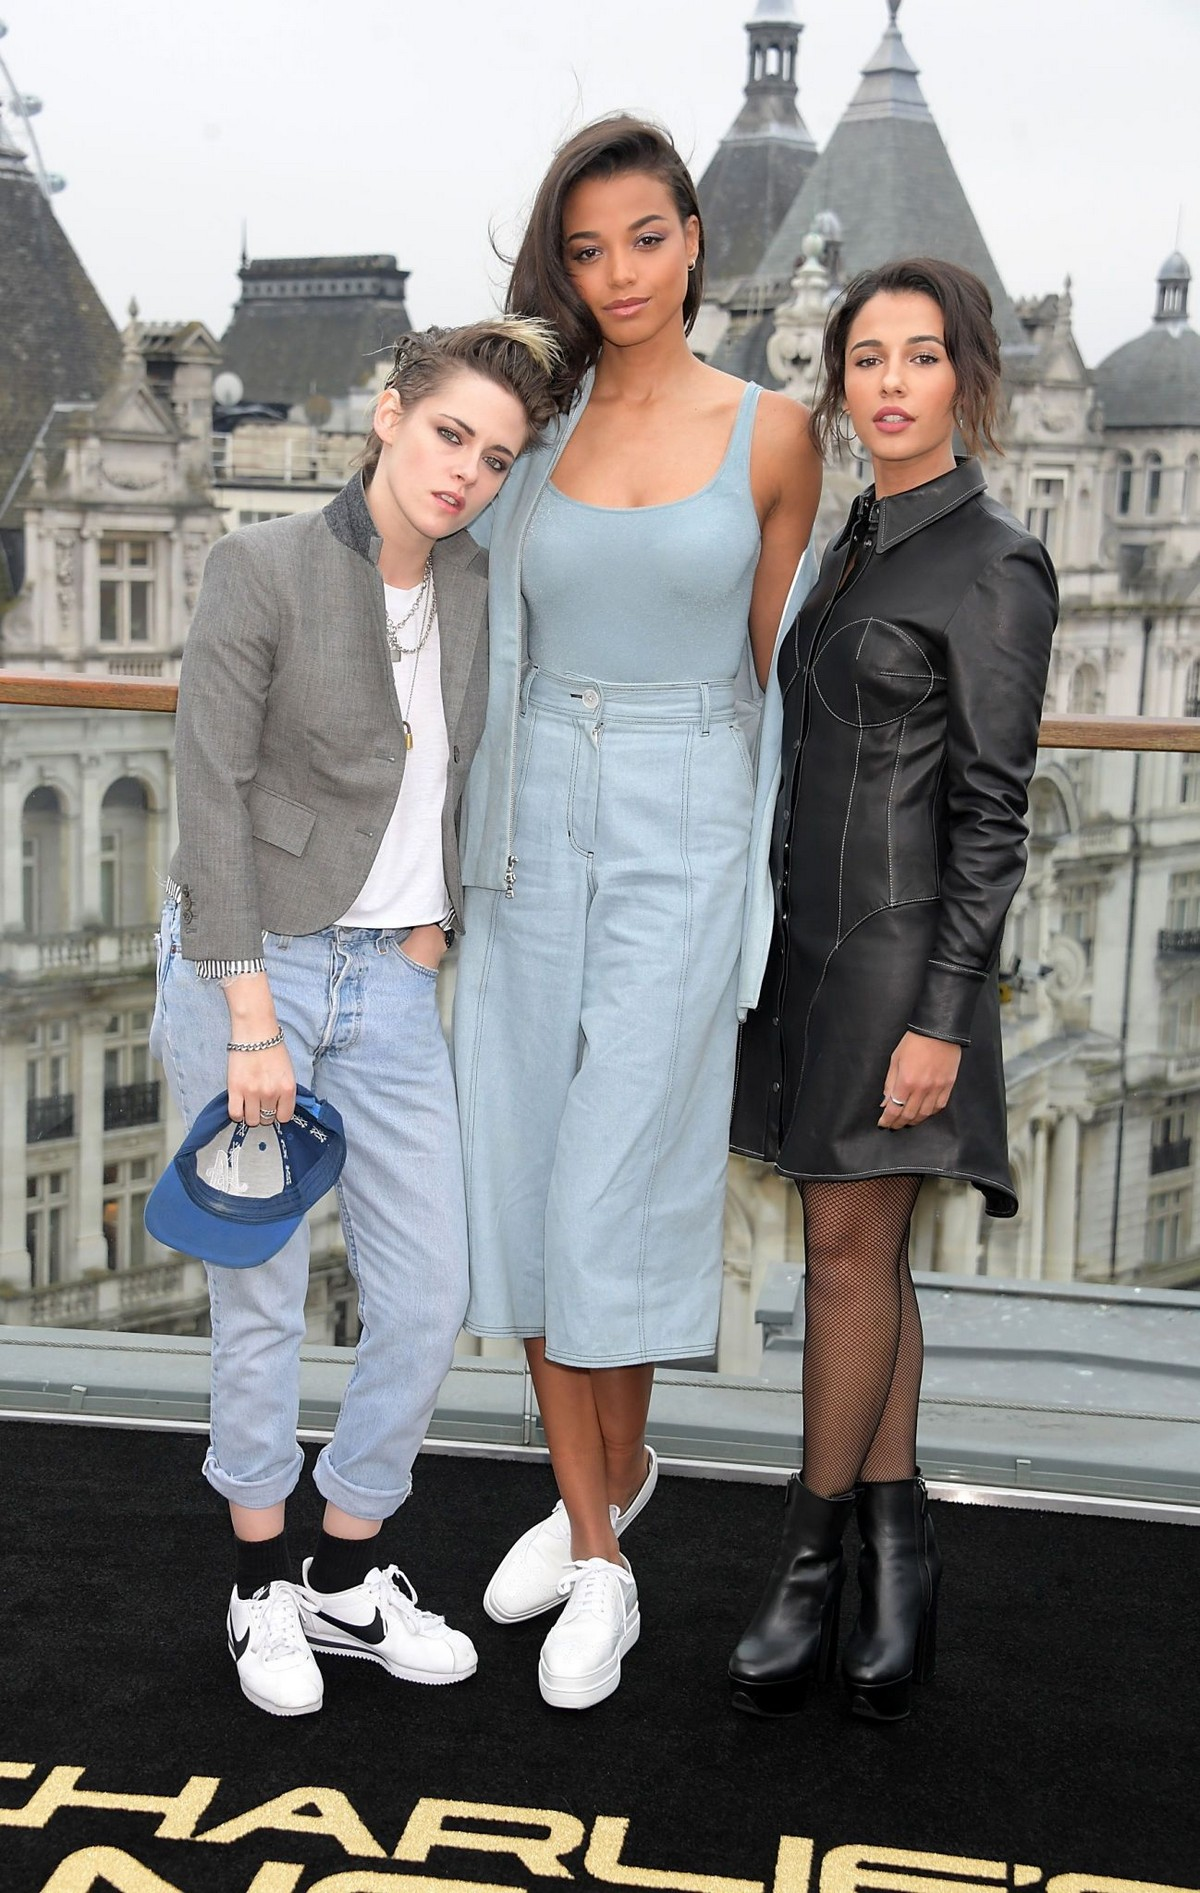 Ella Balinska, Kristen Stewart and Naomi Scott for Charlie's Angels at The Corinthia Hotel in London 2019/11/21 1